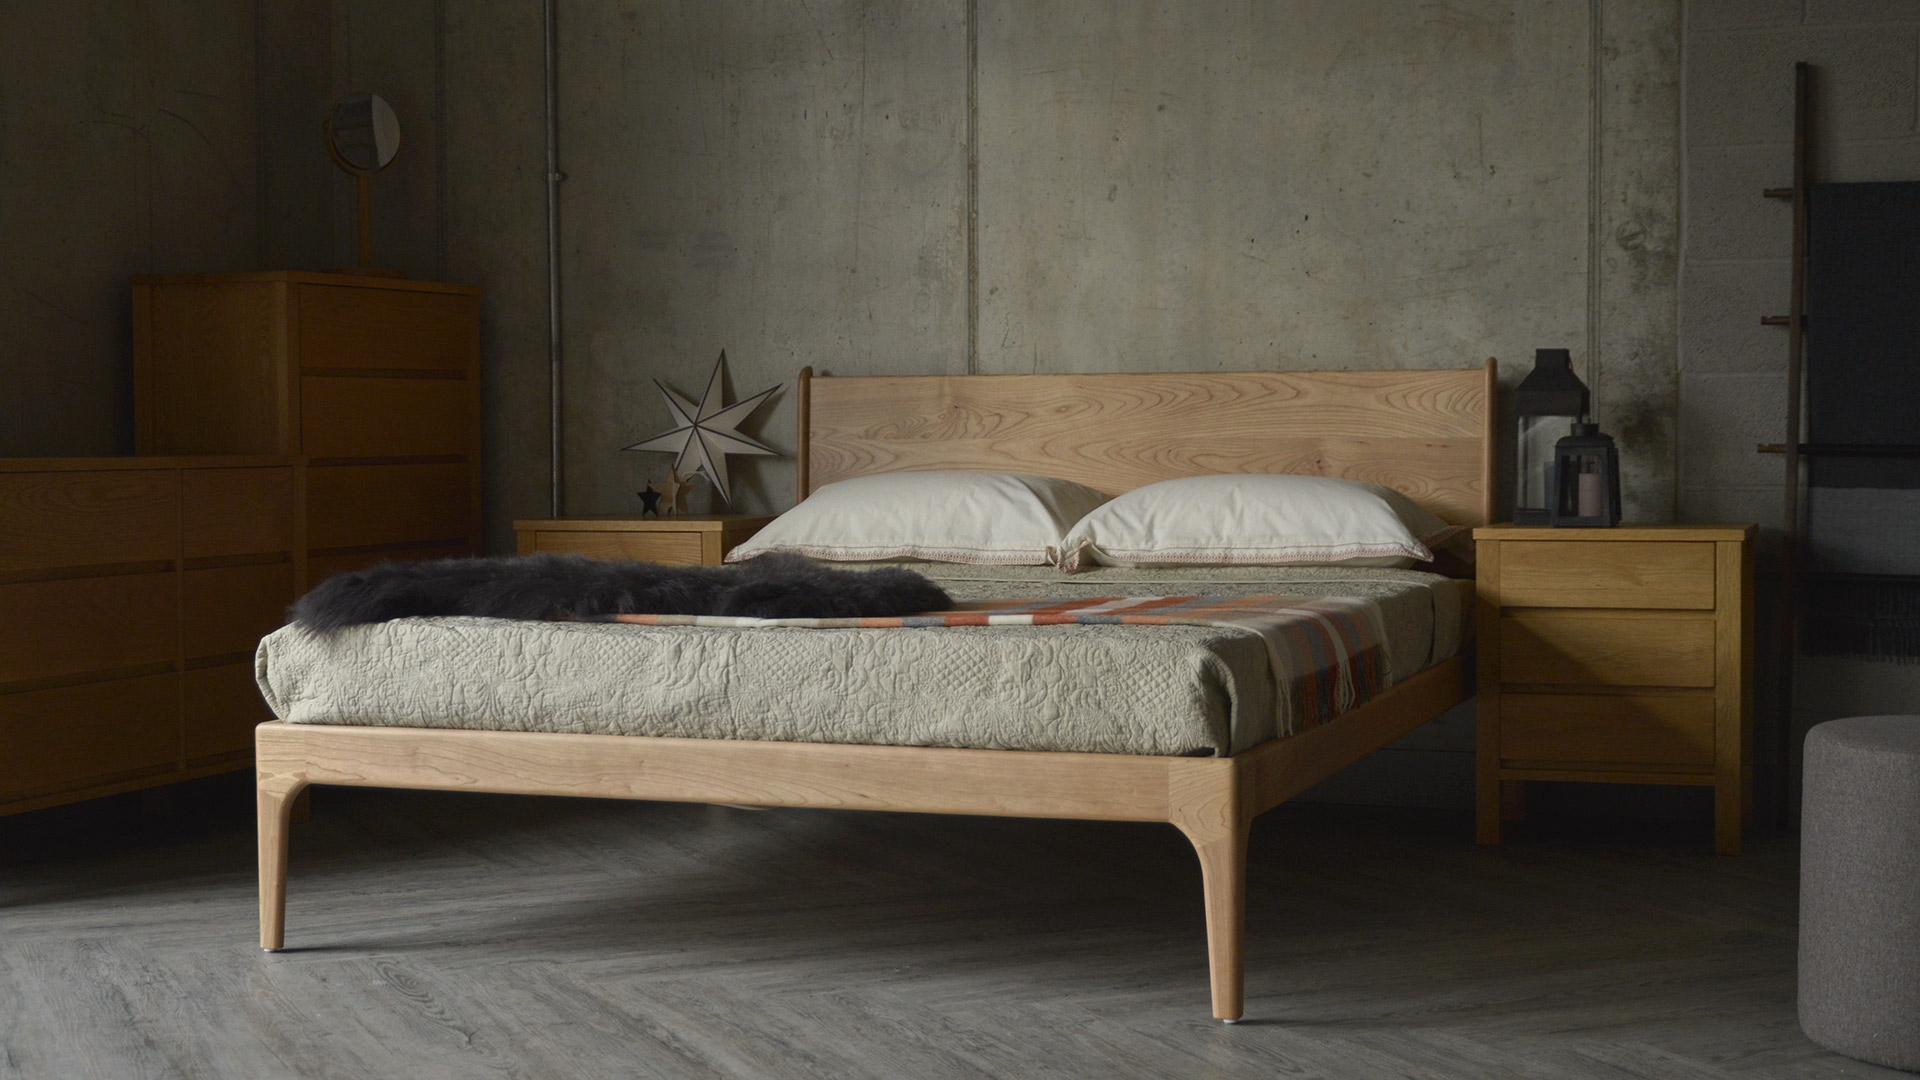 Contemporary Camden bed made from solid Cherry wood